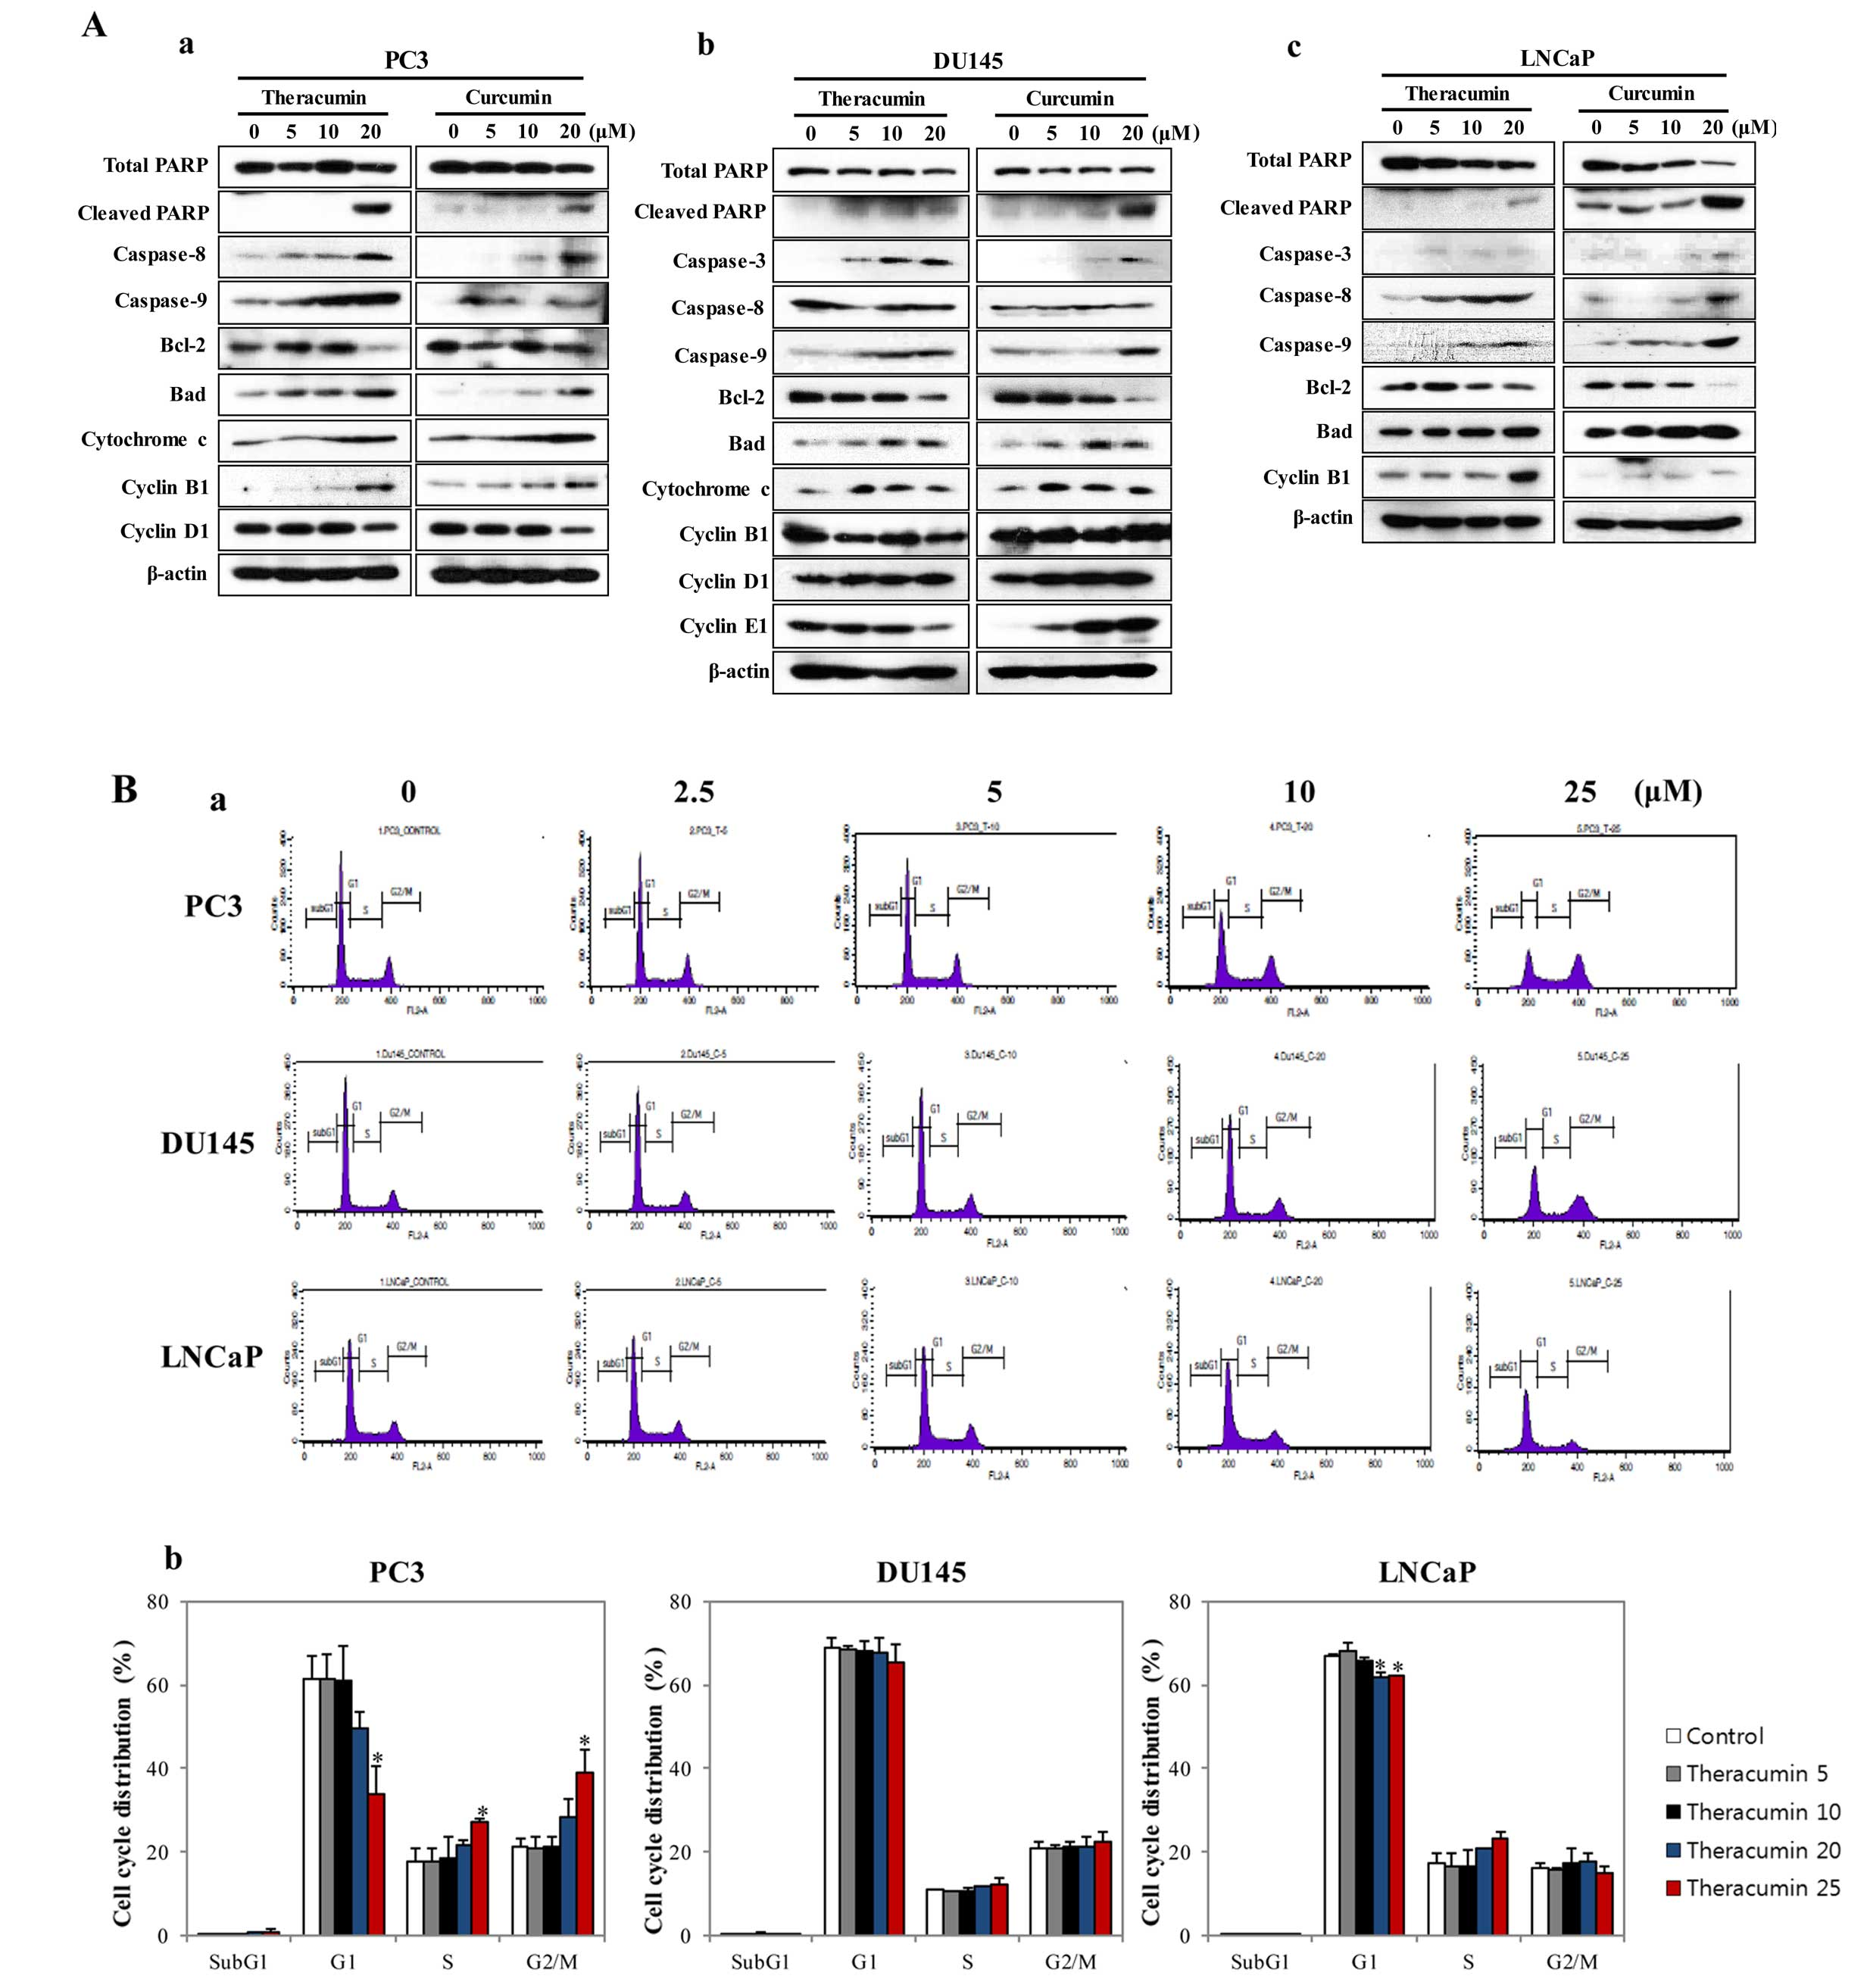 Theracurmin Efficiently Inhibits The Growth Of Human Prostate And Bladder Cancer Cells Via Induction Of Apoptotic Cell Death And Cell Cycle Arrest